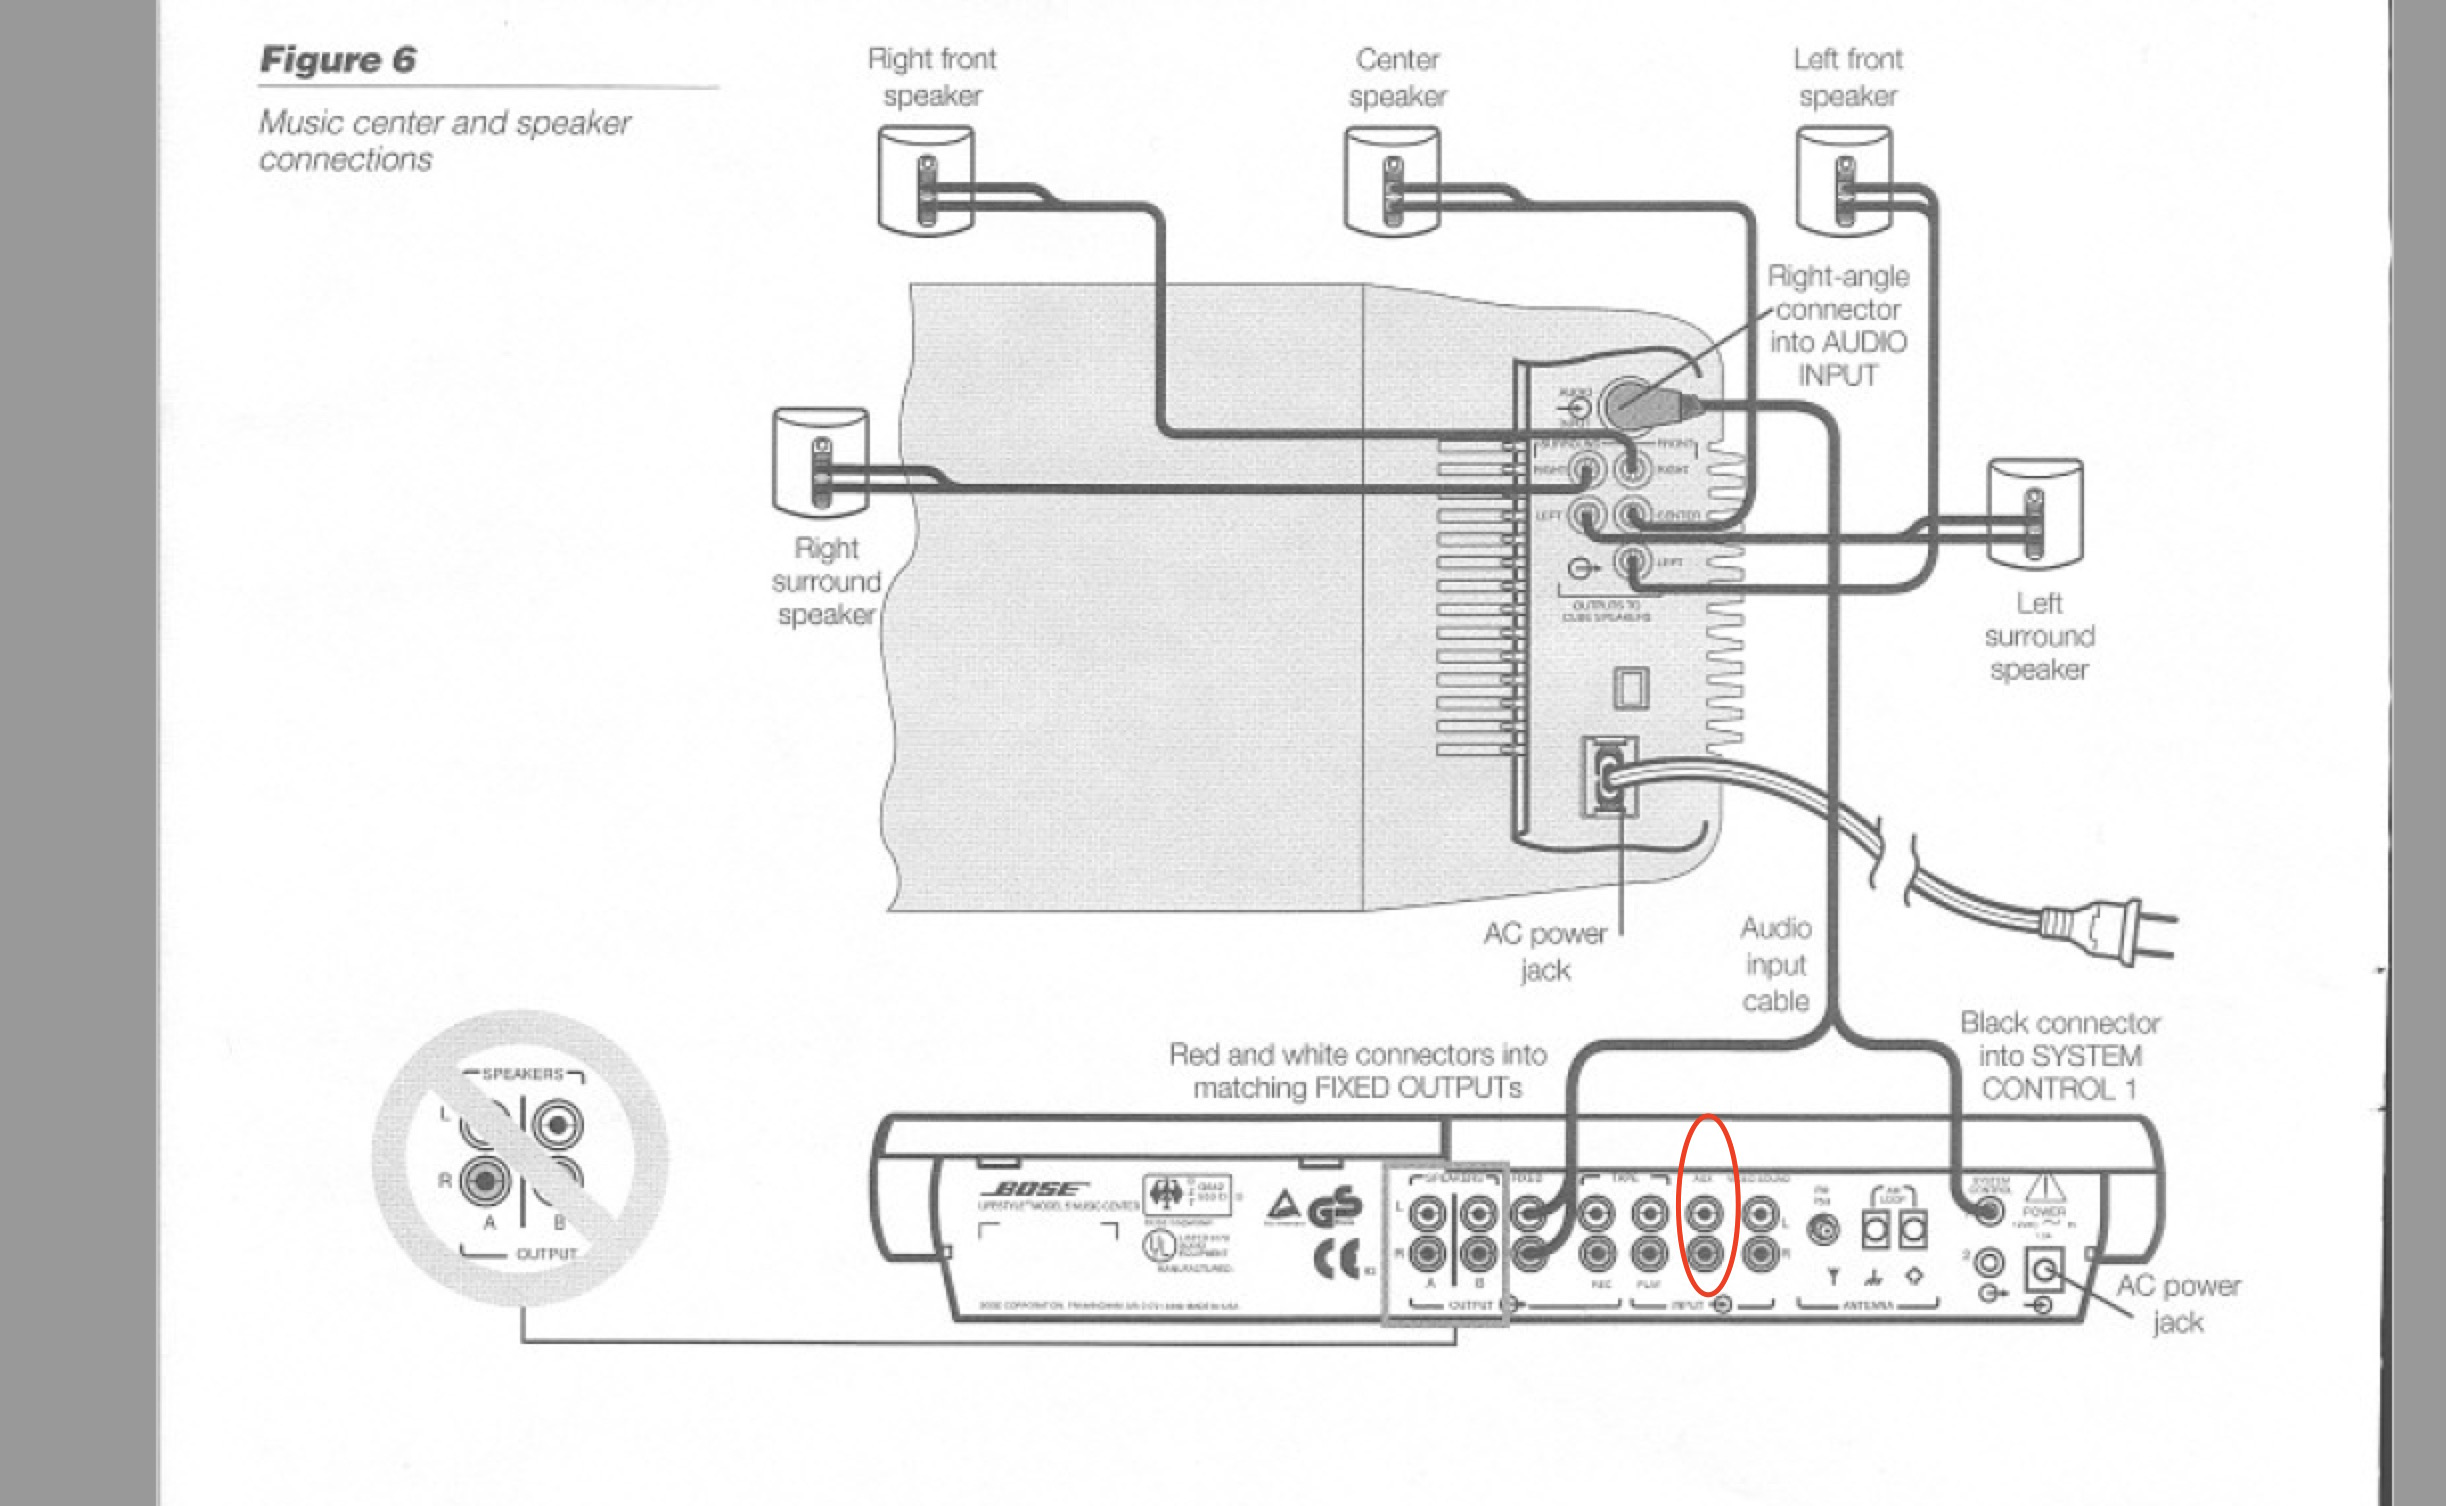 Bose Surround Sound Wiring Diagram Libraries For Diagrams U2022bose Images Gallery